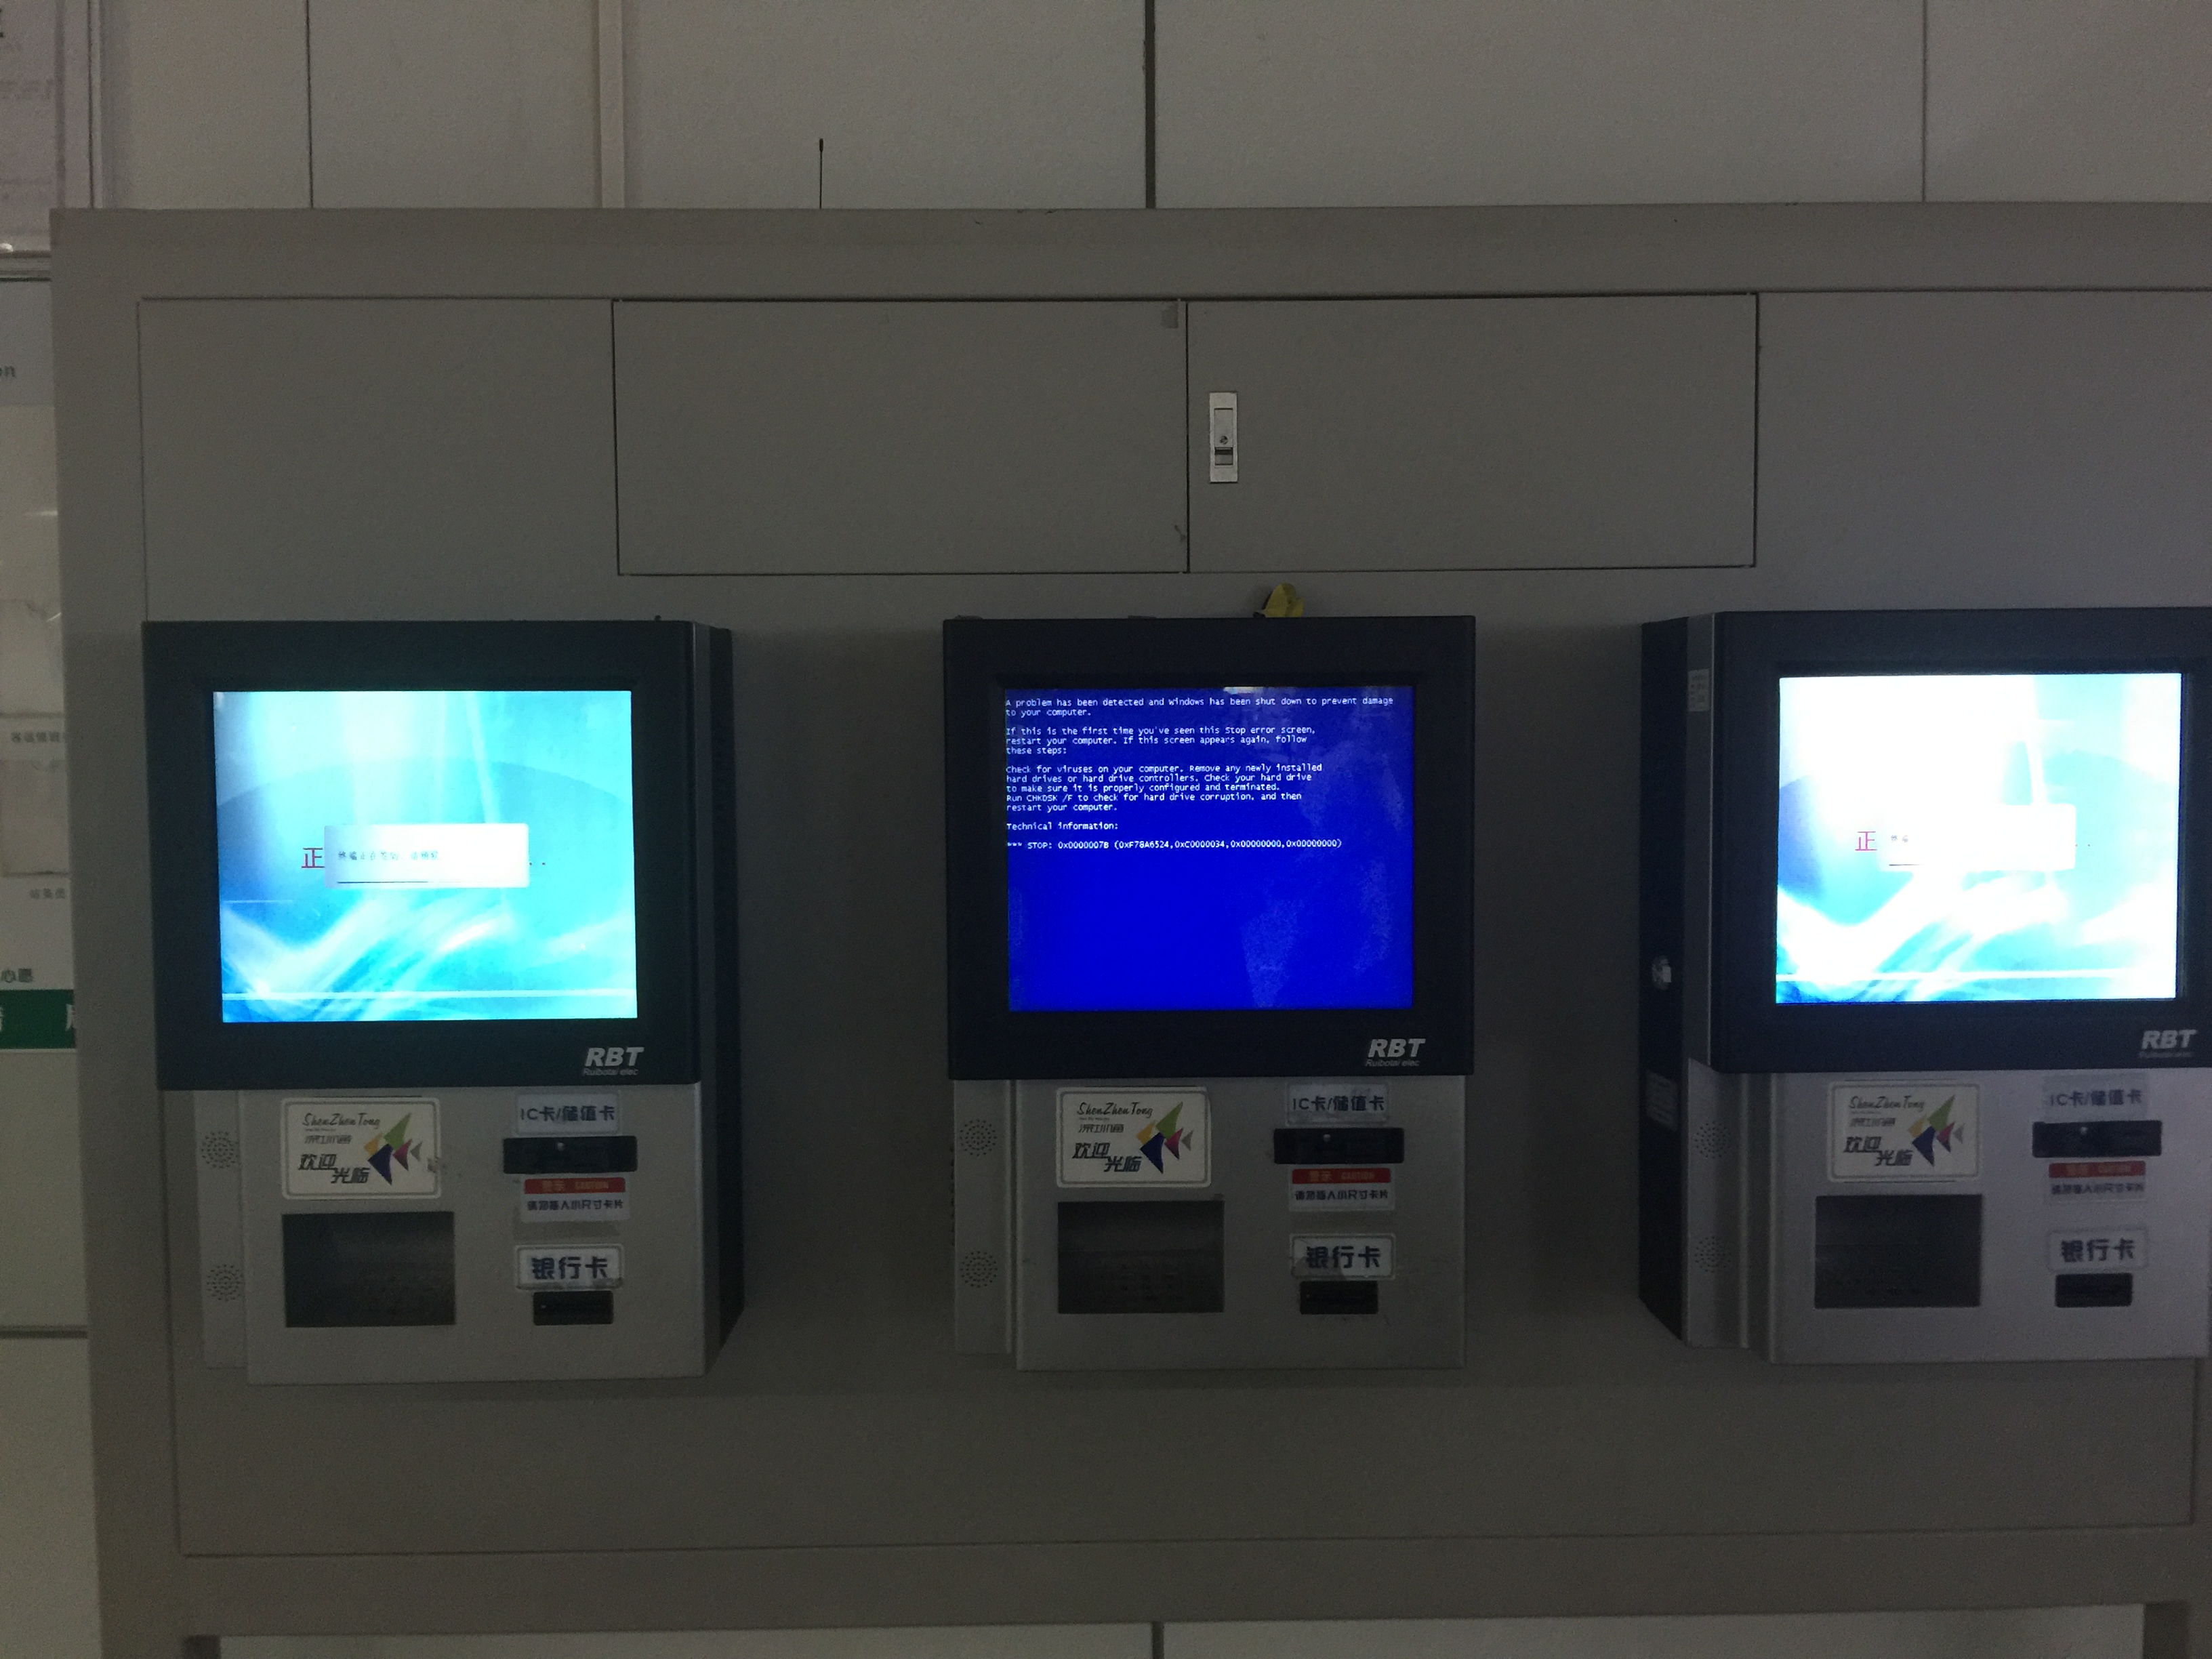 File:Blue Screen of Death at the University Town station of Shenzhen